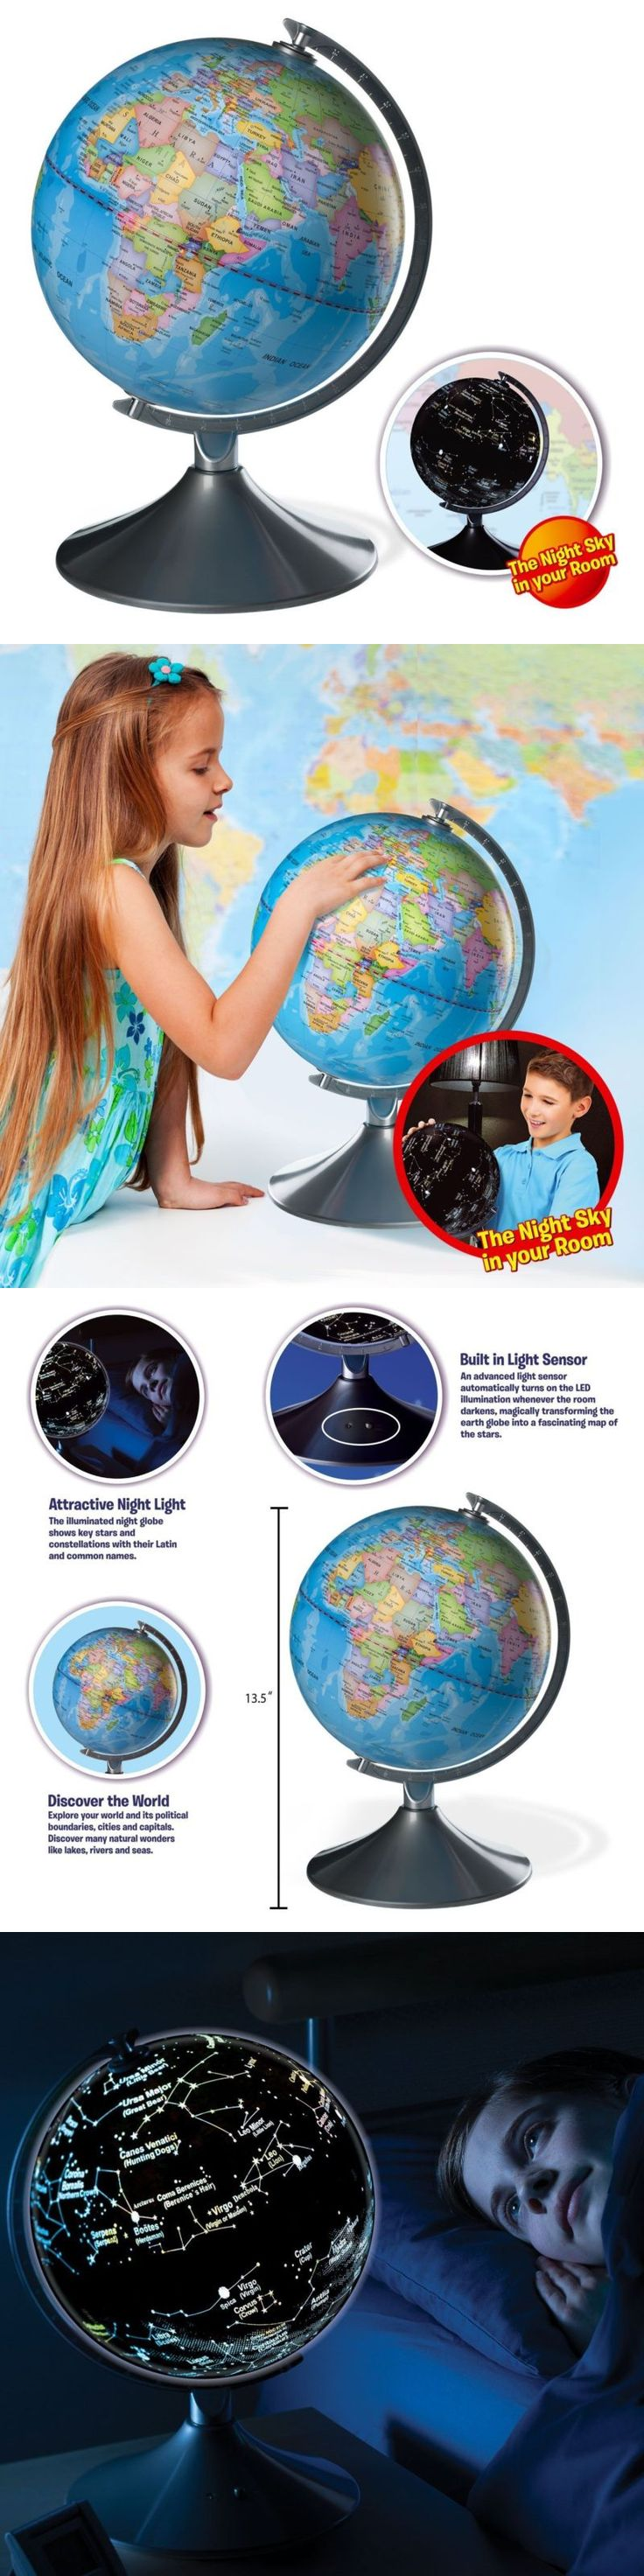 Geography and History 11733: Interactive Globe For Kids, 2 In 1, Day And Night View Illuminated -> BUY IT NOW ONLY: $71.99 on eBay!